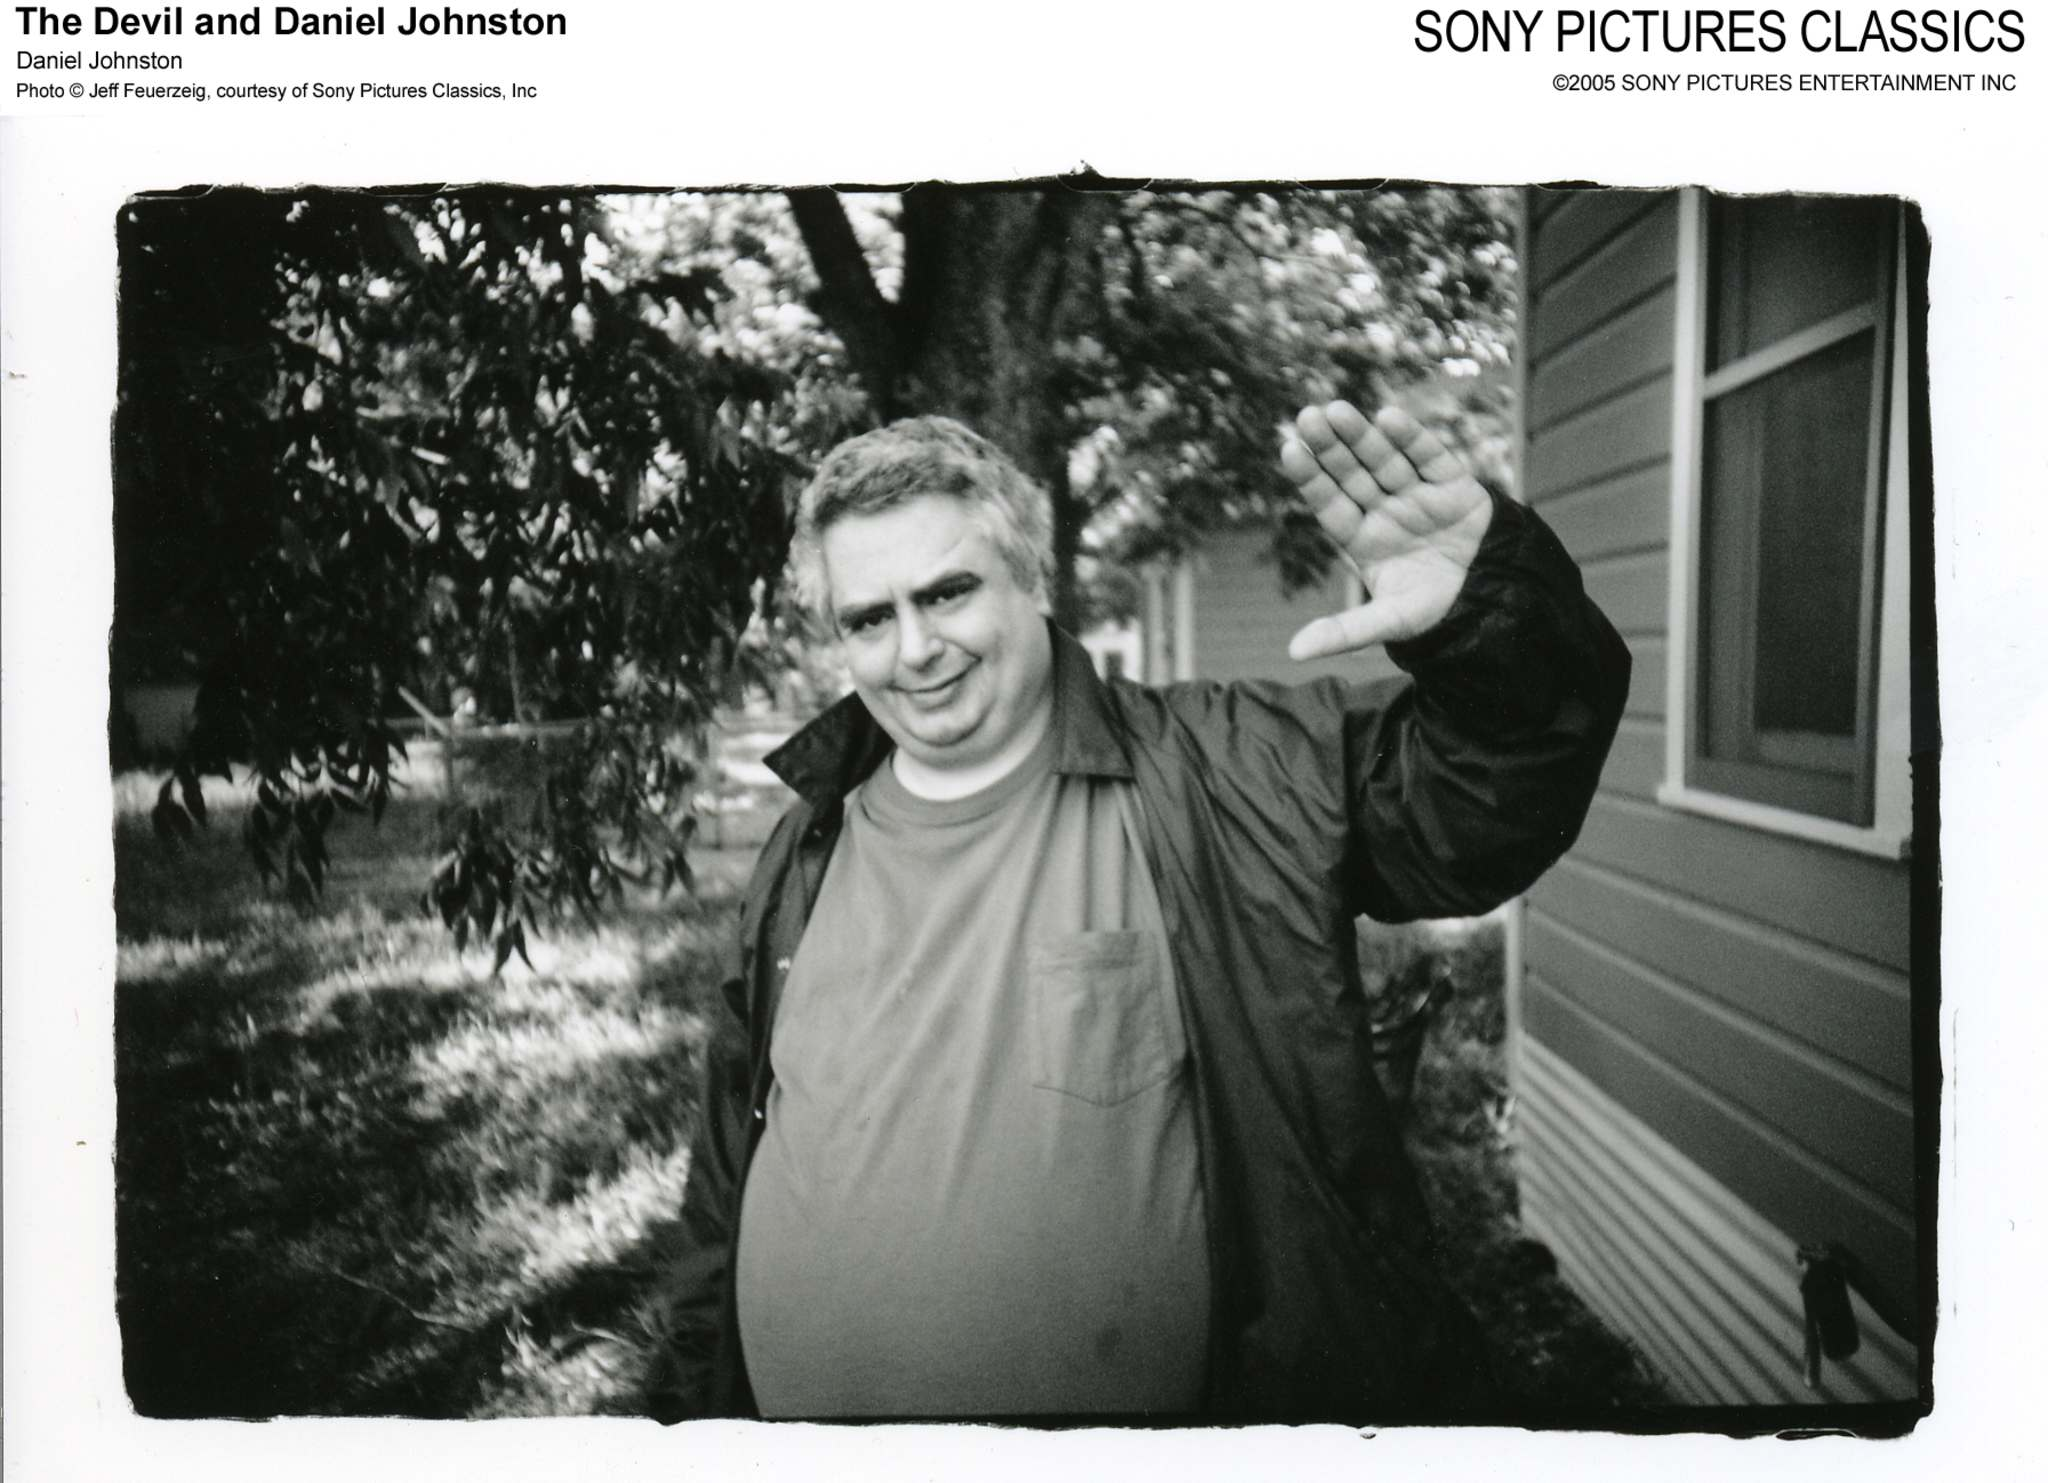 SUPPLIED PHOTO</p><p>Musician Daniel Johnston.</p></p>